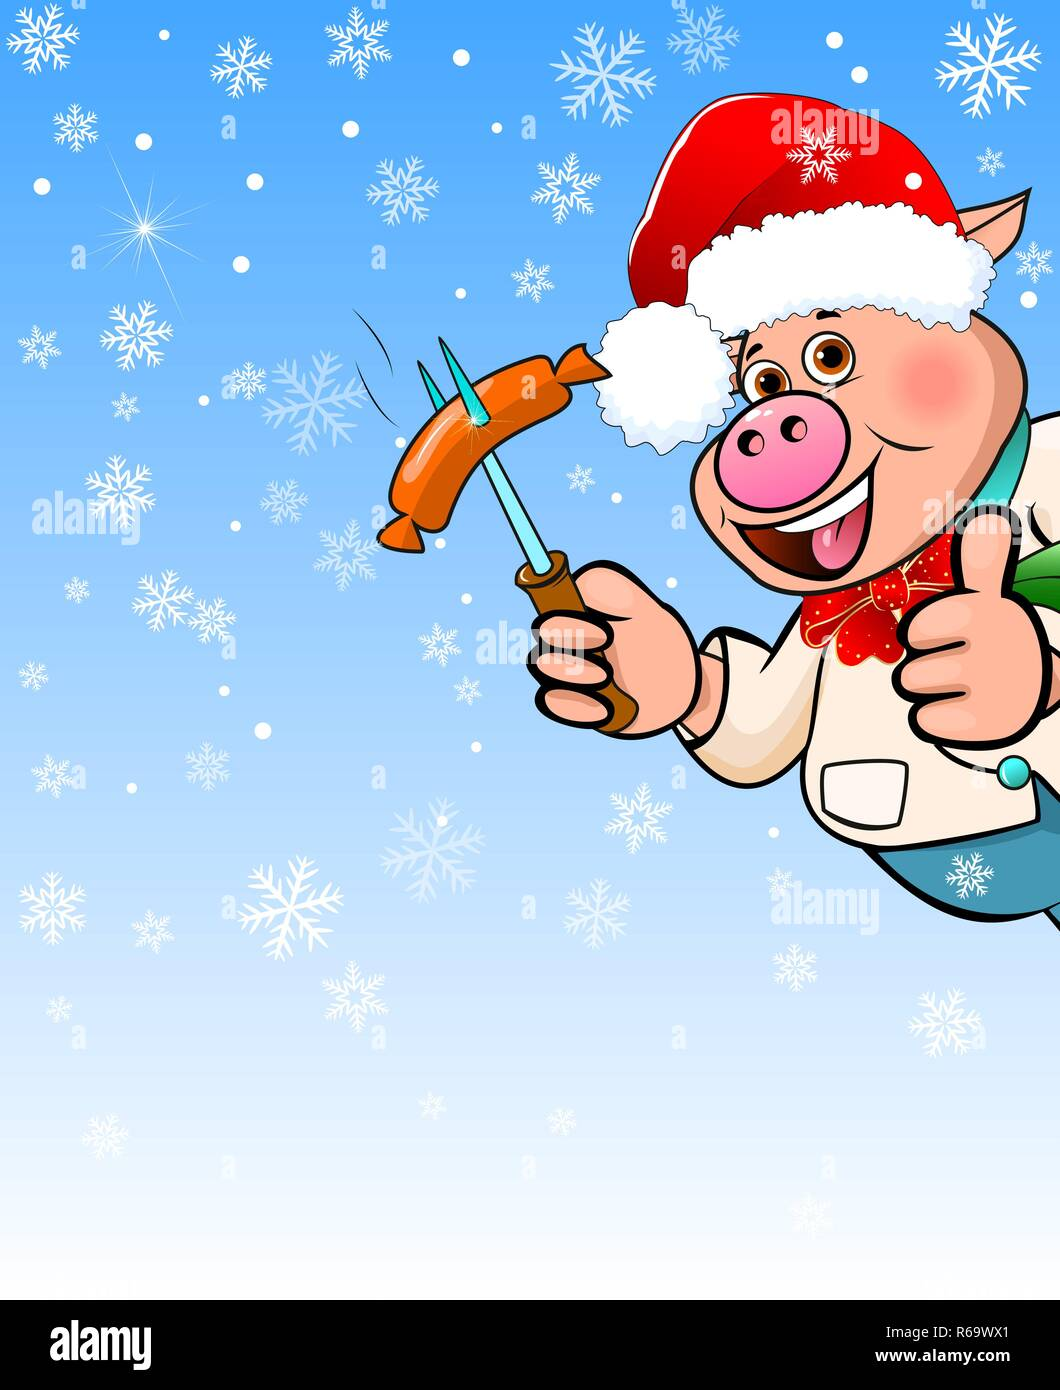 Cartoon pig in a hat Santa Claus holding a sausage barbecue in his hand. - Stock Image